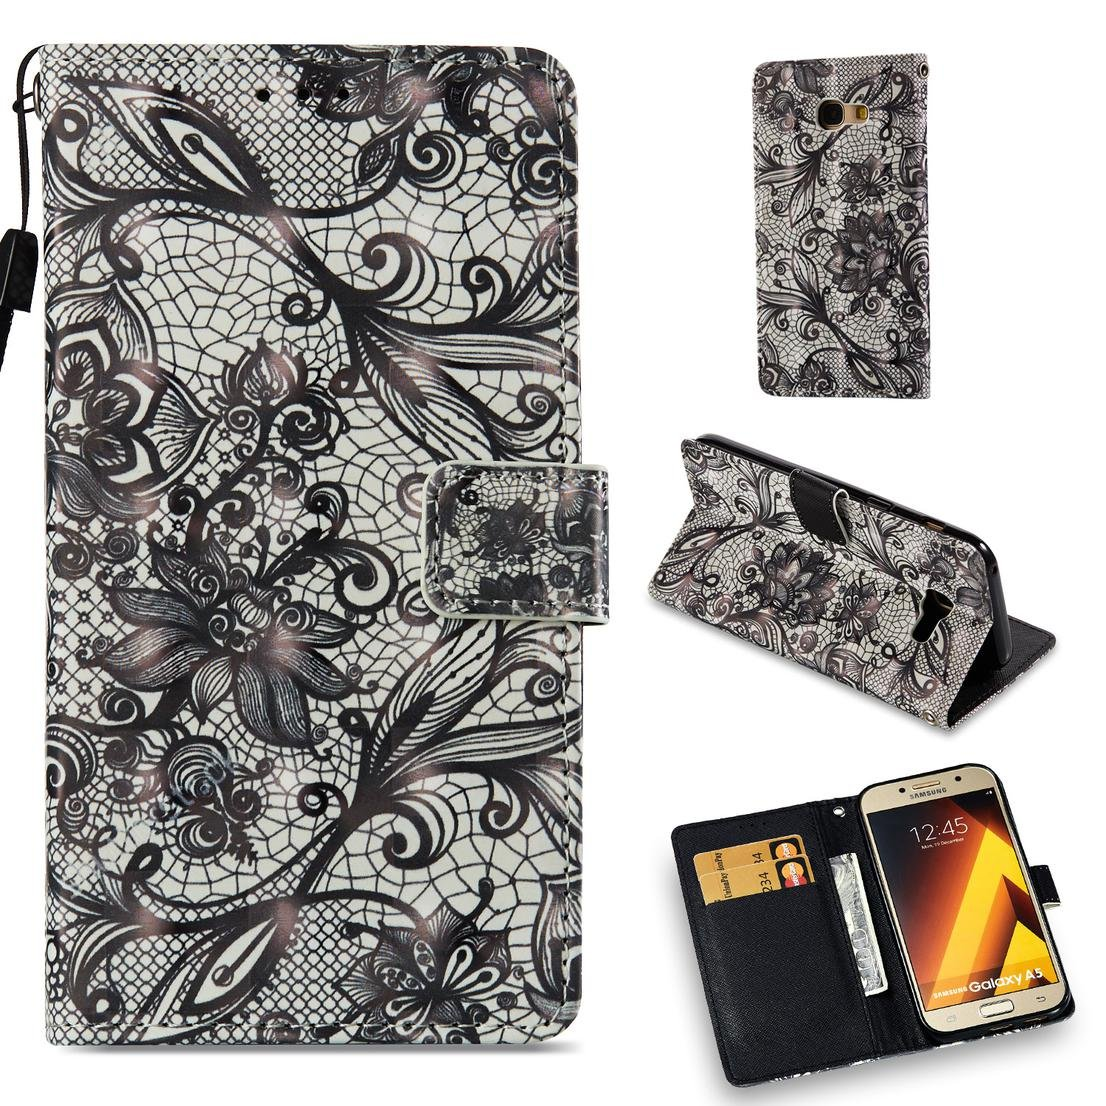 Amazon.com: Galaxy A5 2017 Case,Pu Leather Wallet Cover Flip ...